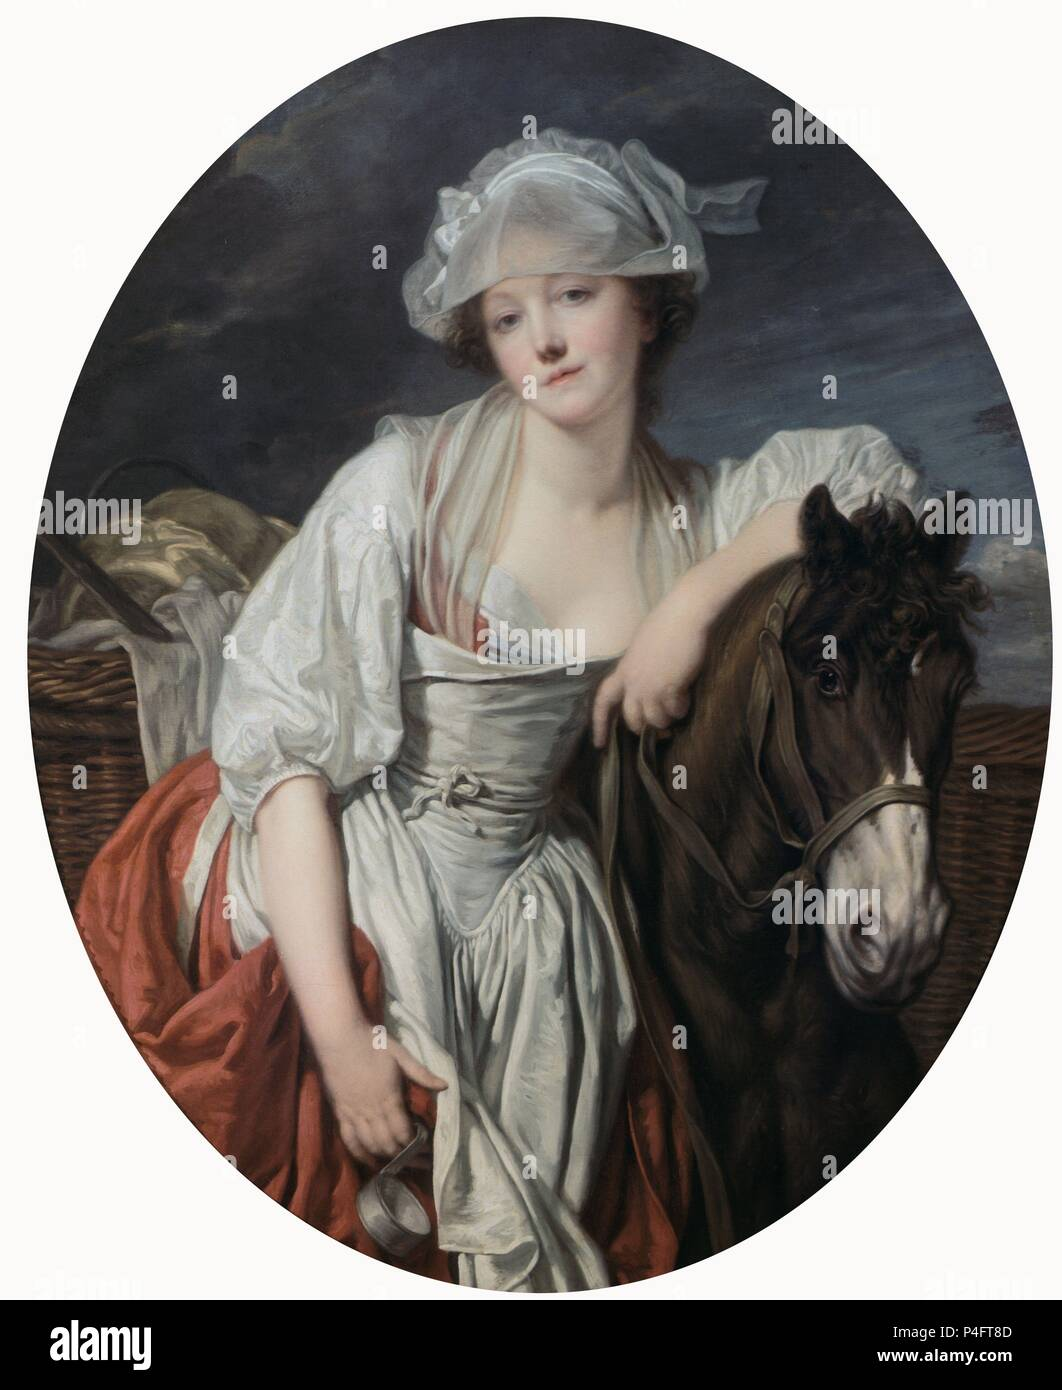 The Milkmaid - 18th century - 106x86 cm - oil on canvas - French Rococo. Author: Jean Baptiste Greuze (1725-1805). Location: LOUVRE MUSEUM-PAINTINGS. Also known as: LA LECHERA. Stock Photo